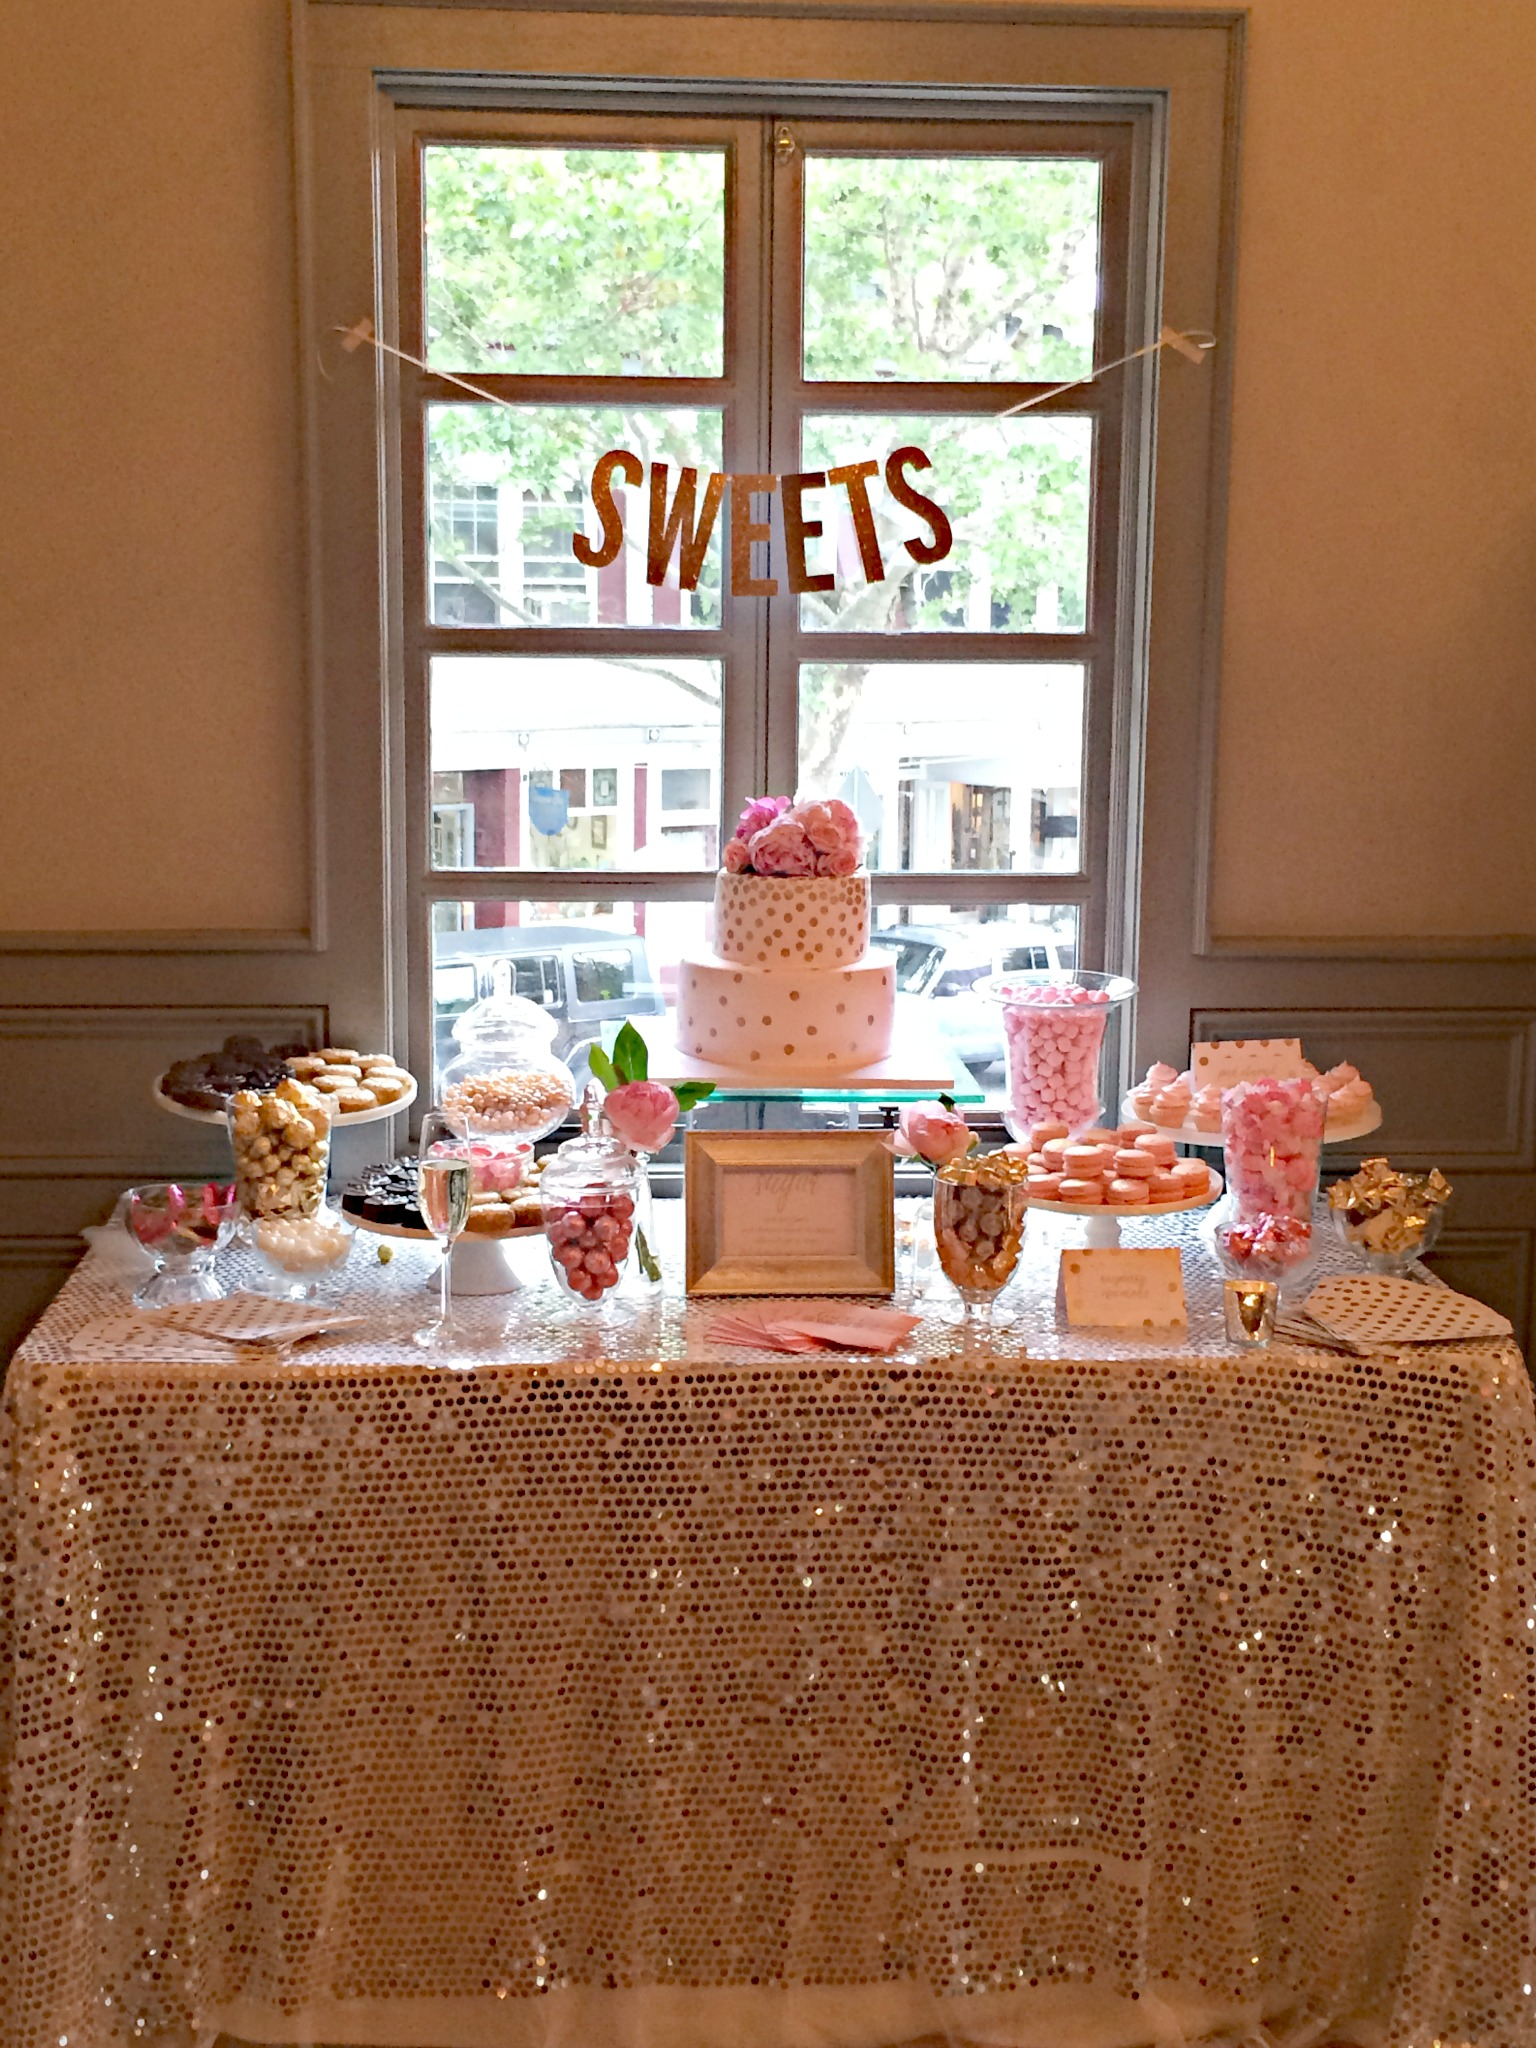 35 Delicious Bridal Shower Desserts Table Ideas | Table ...